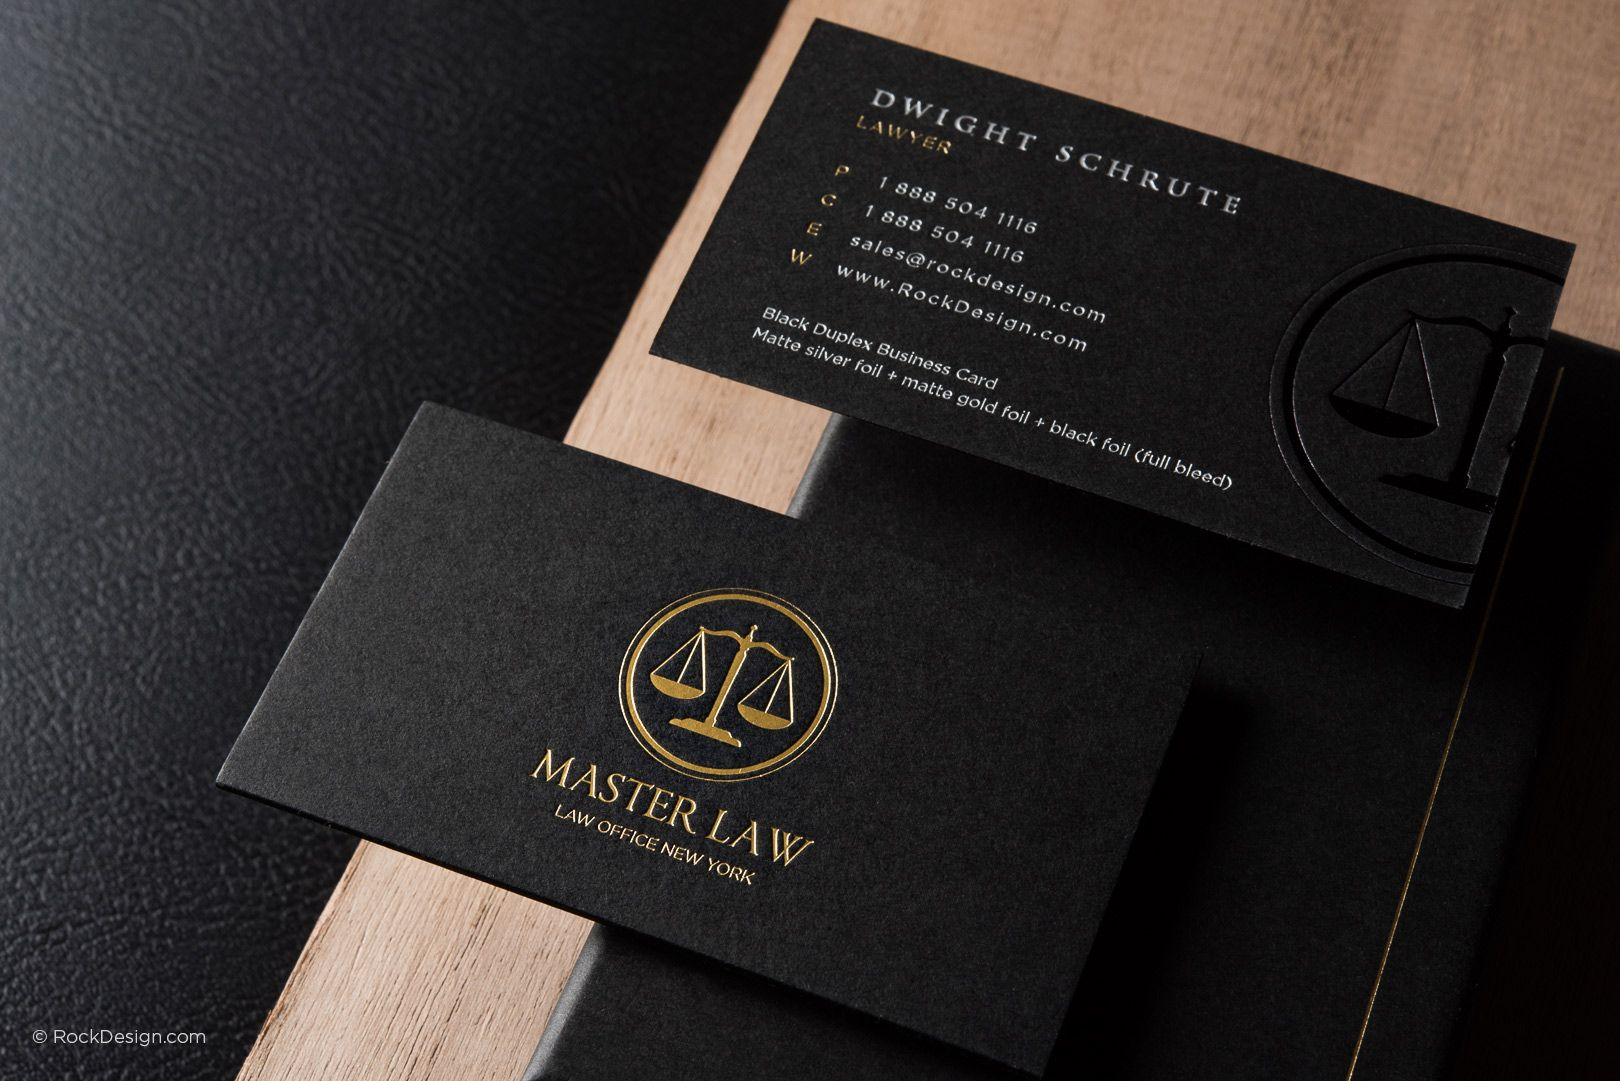 Classic modern black duplex attorney business card template master classic modern black duplex attorney business card template master law rockdesign luxury business card printing accmission Gallery